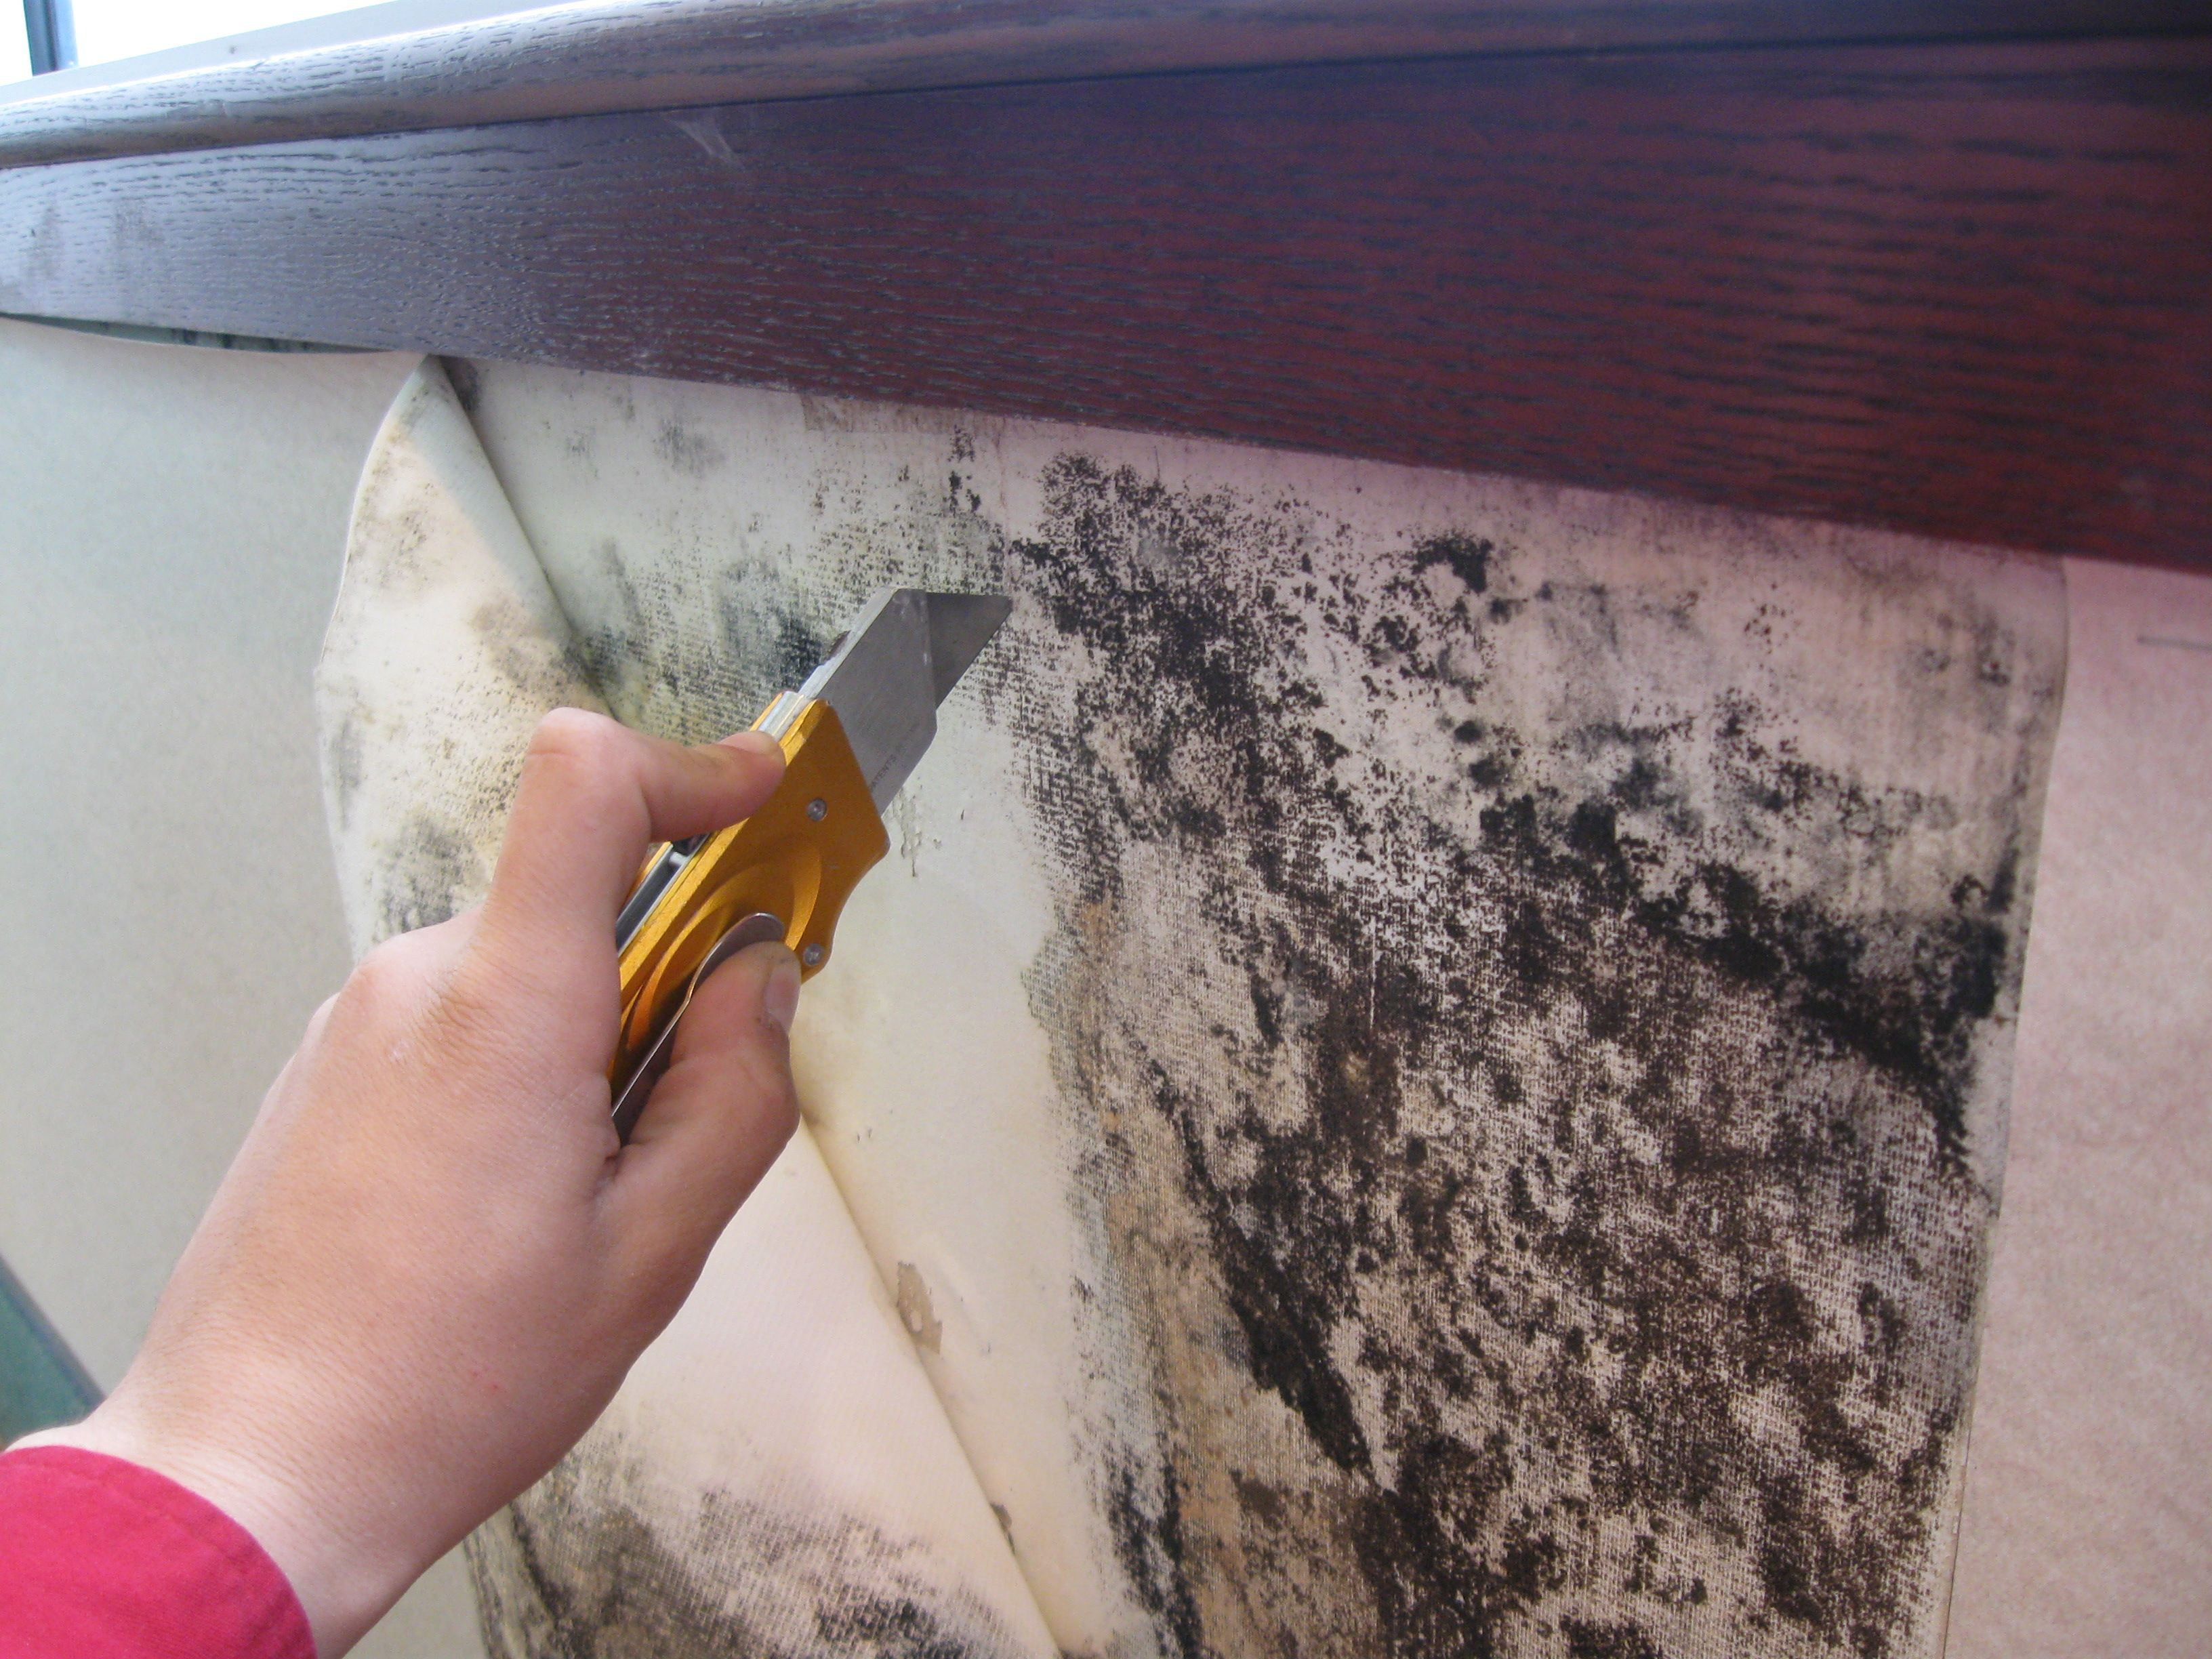 Molds In The Cabinet Water Damage Mold Remediation Molding